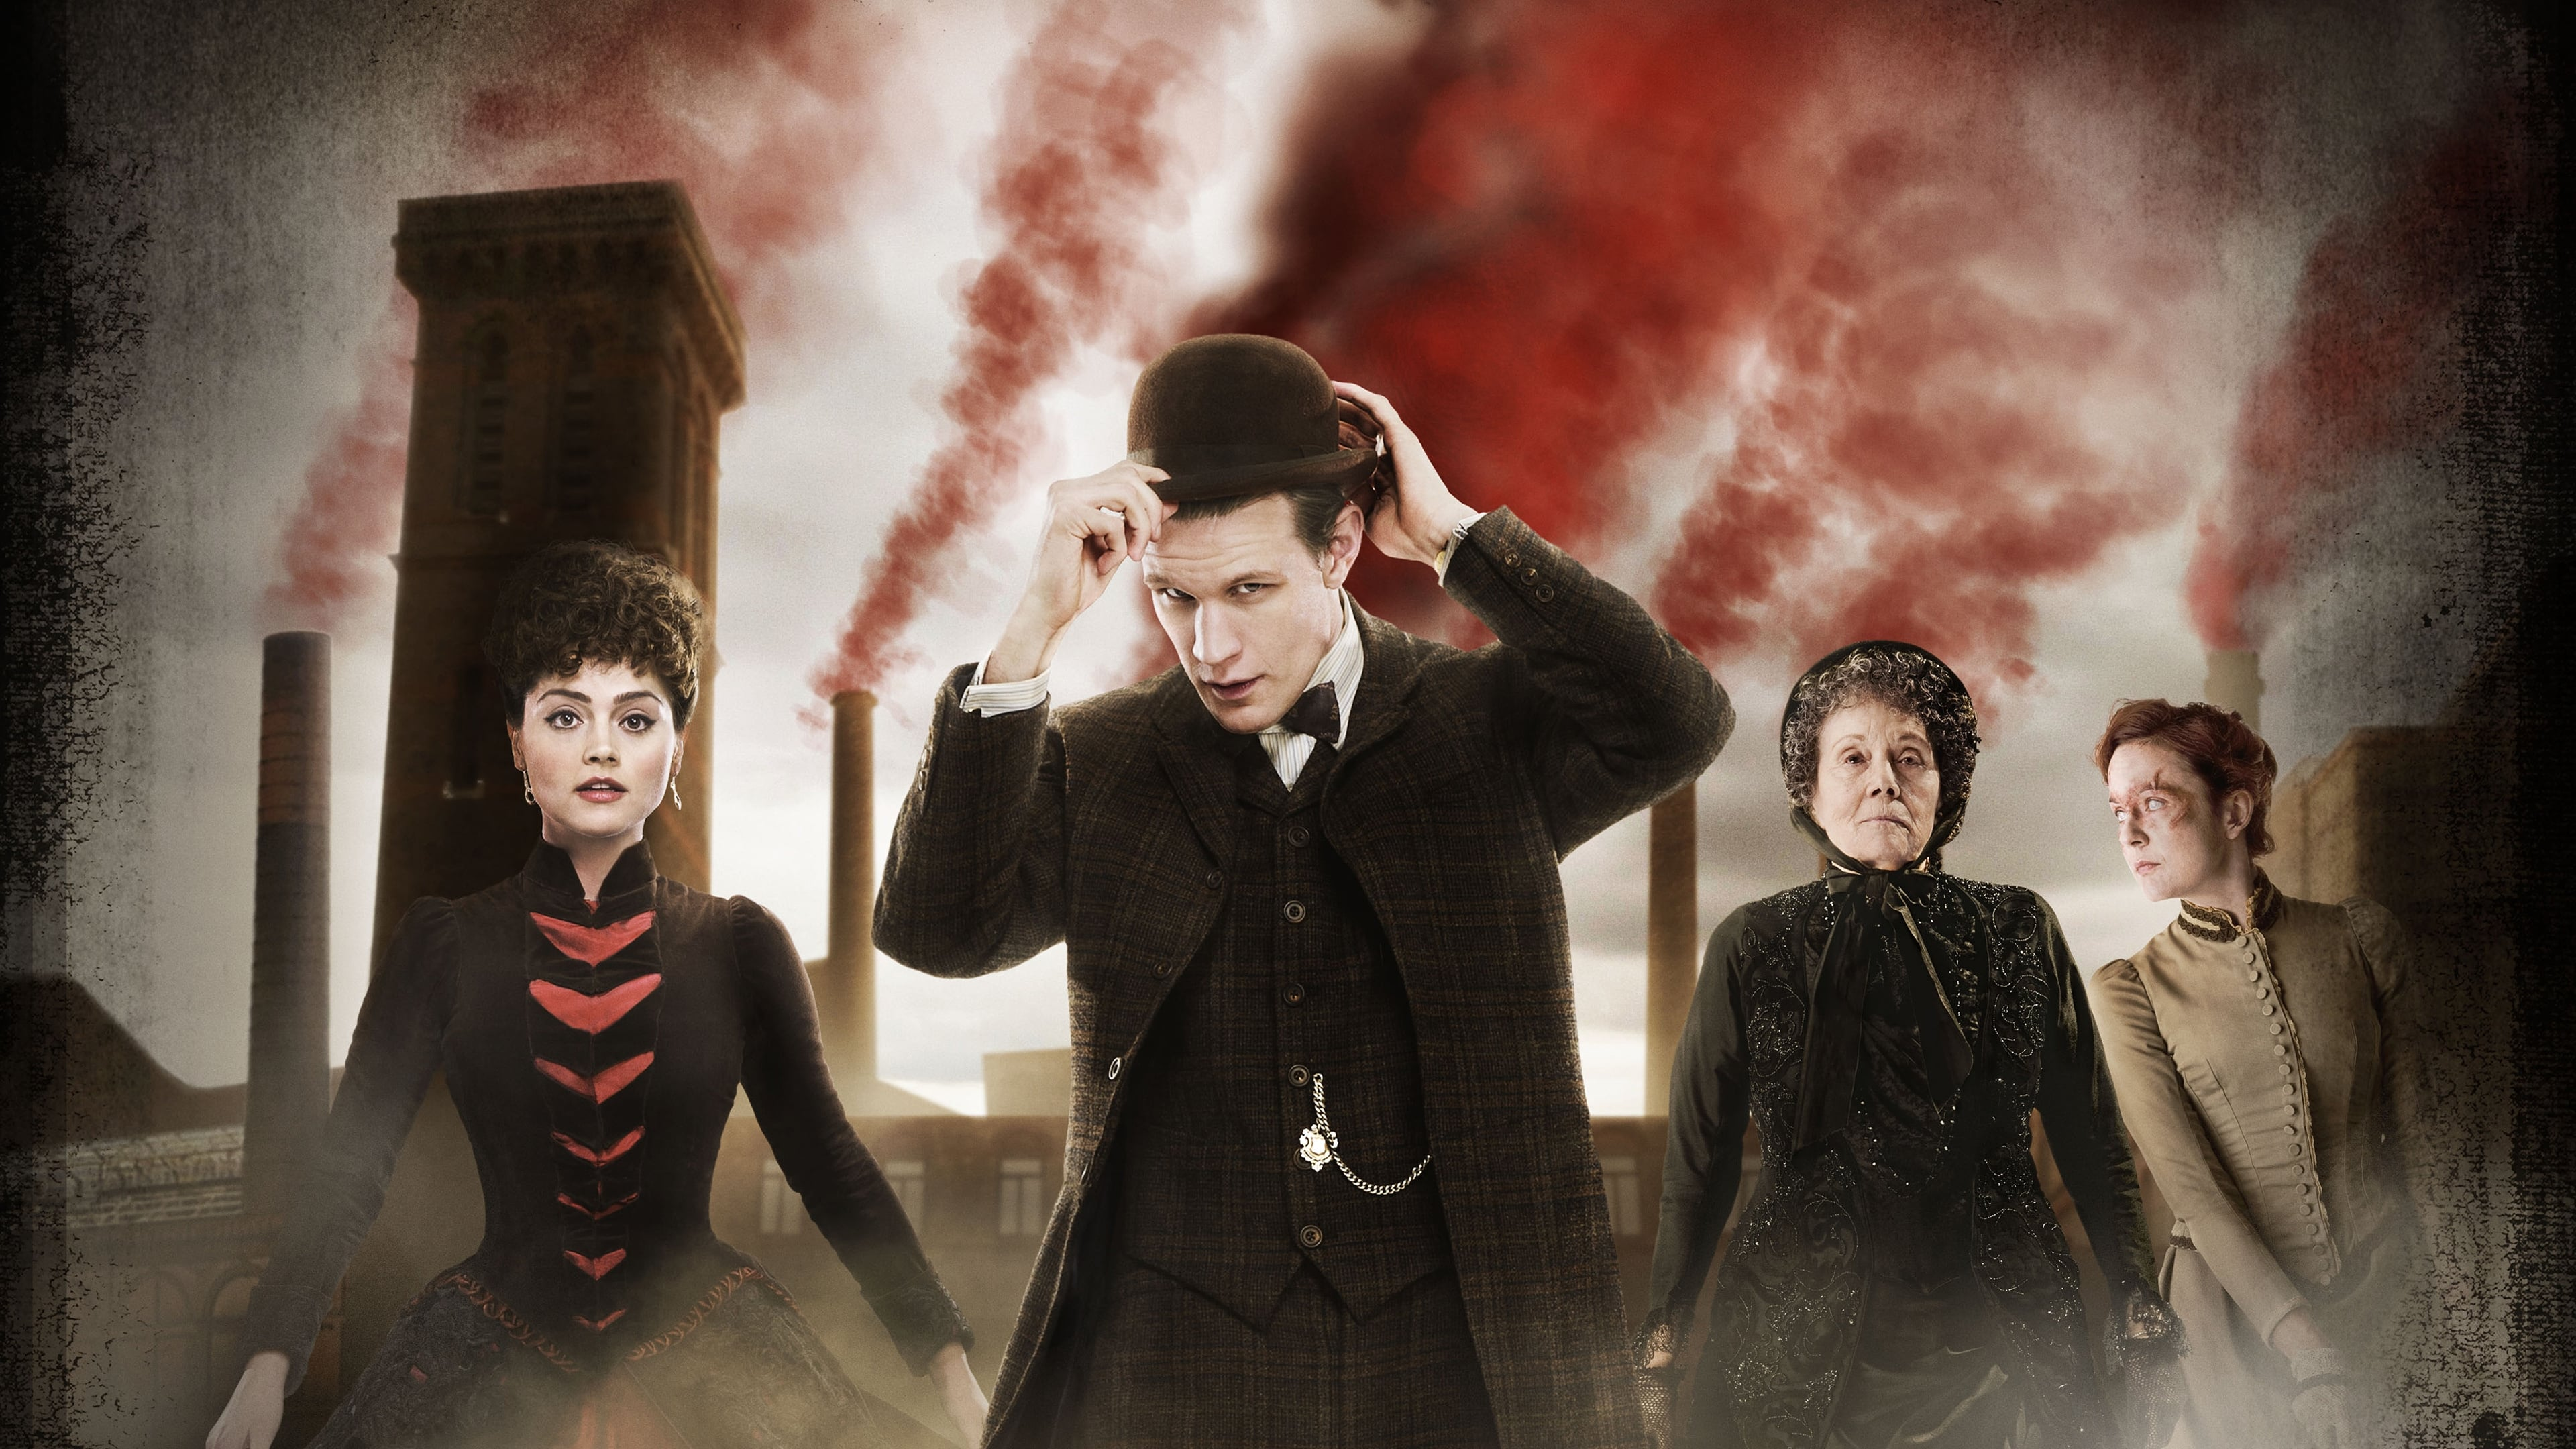 Doctor Who - Season 7 Episode 11 : The Crimson Horror